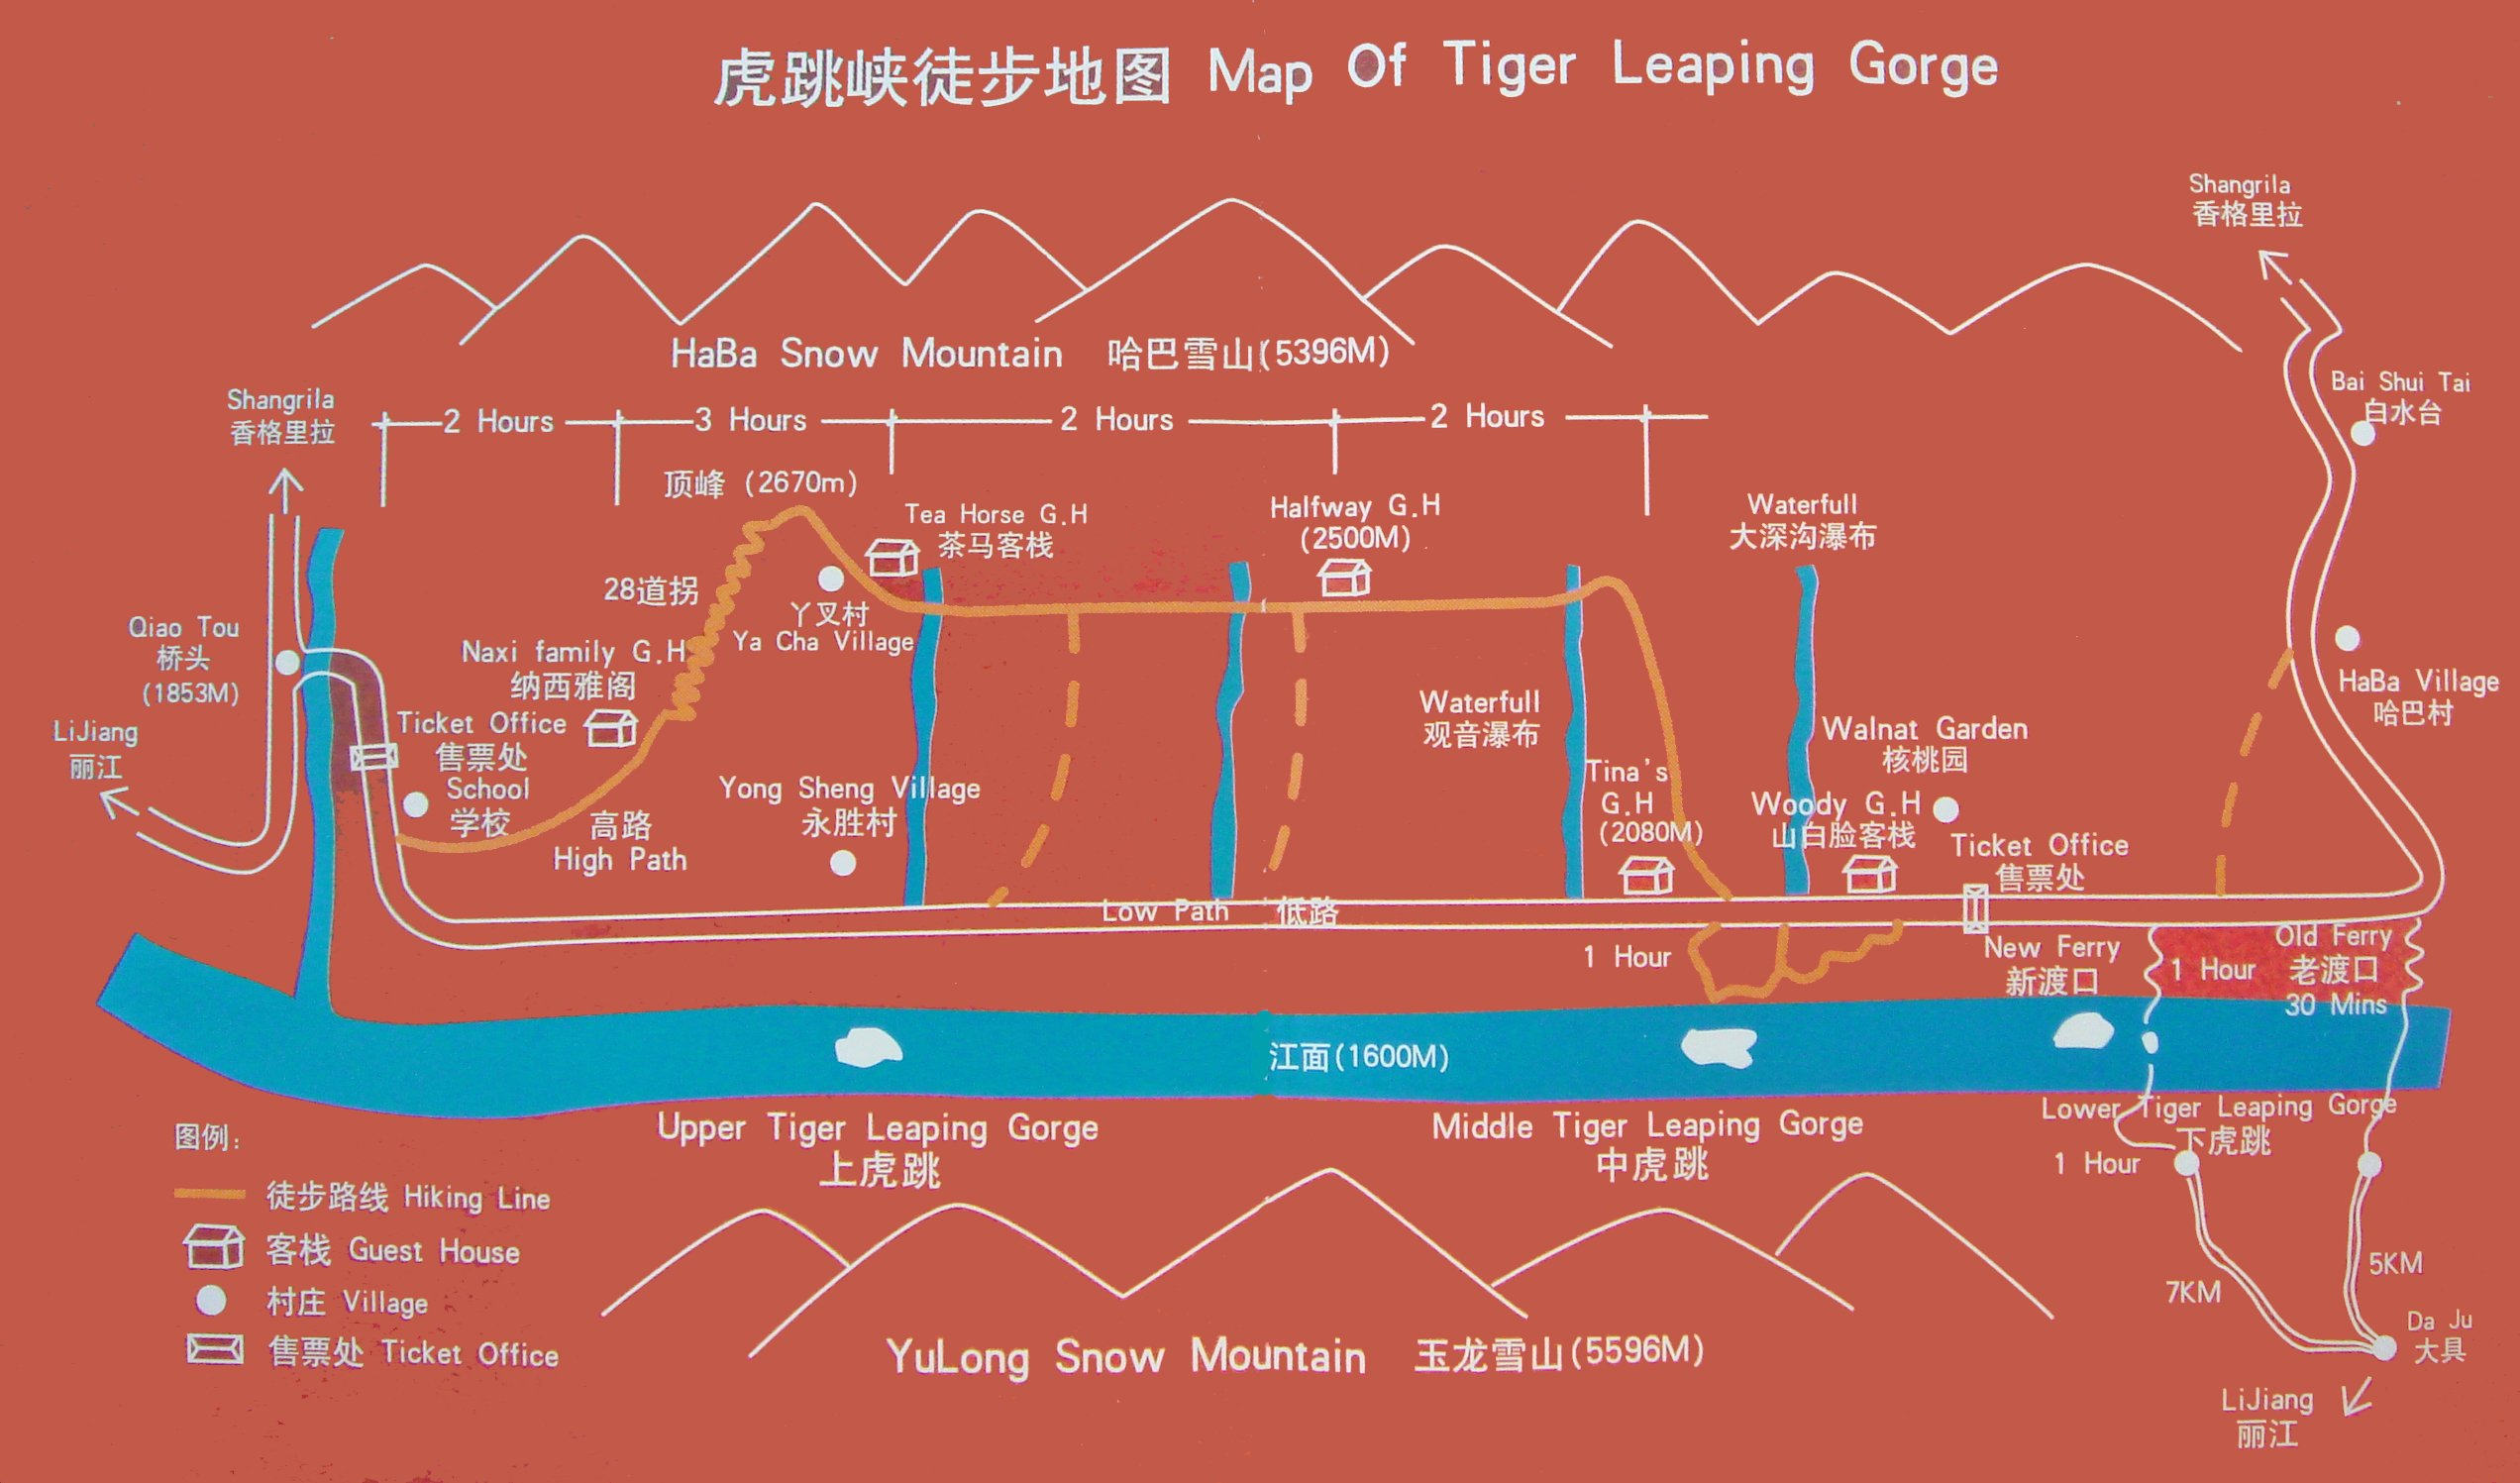 Tiger Leaping Gorge Map